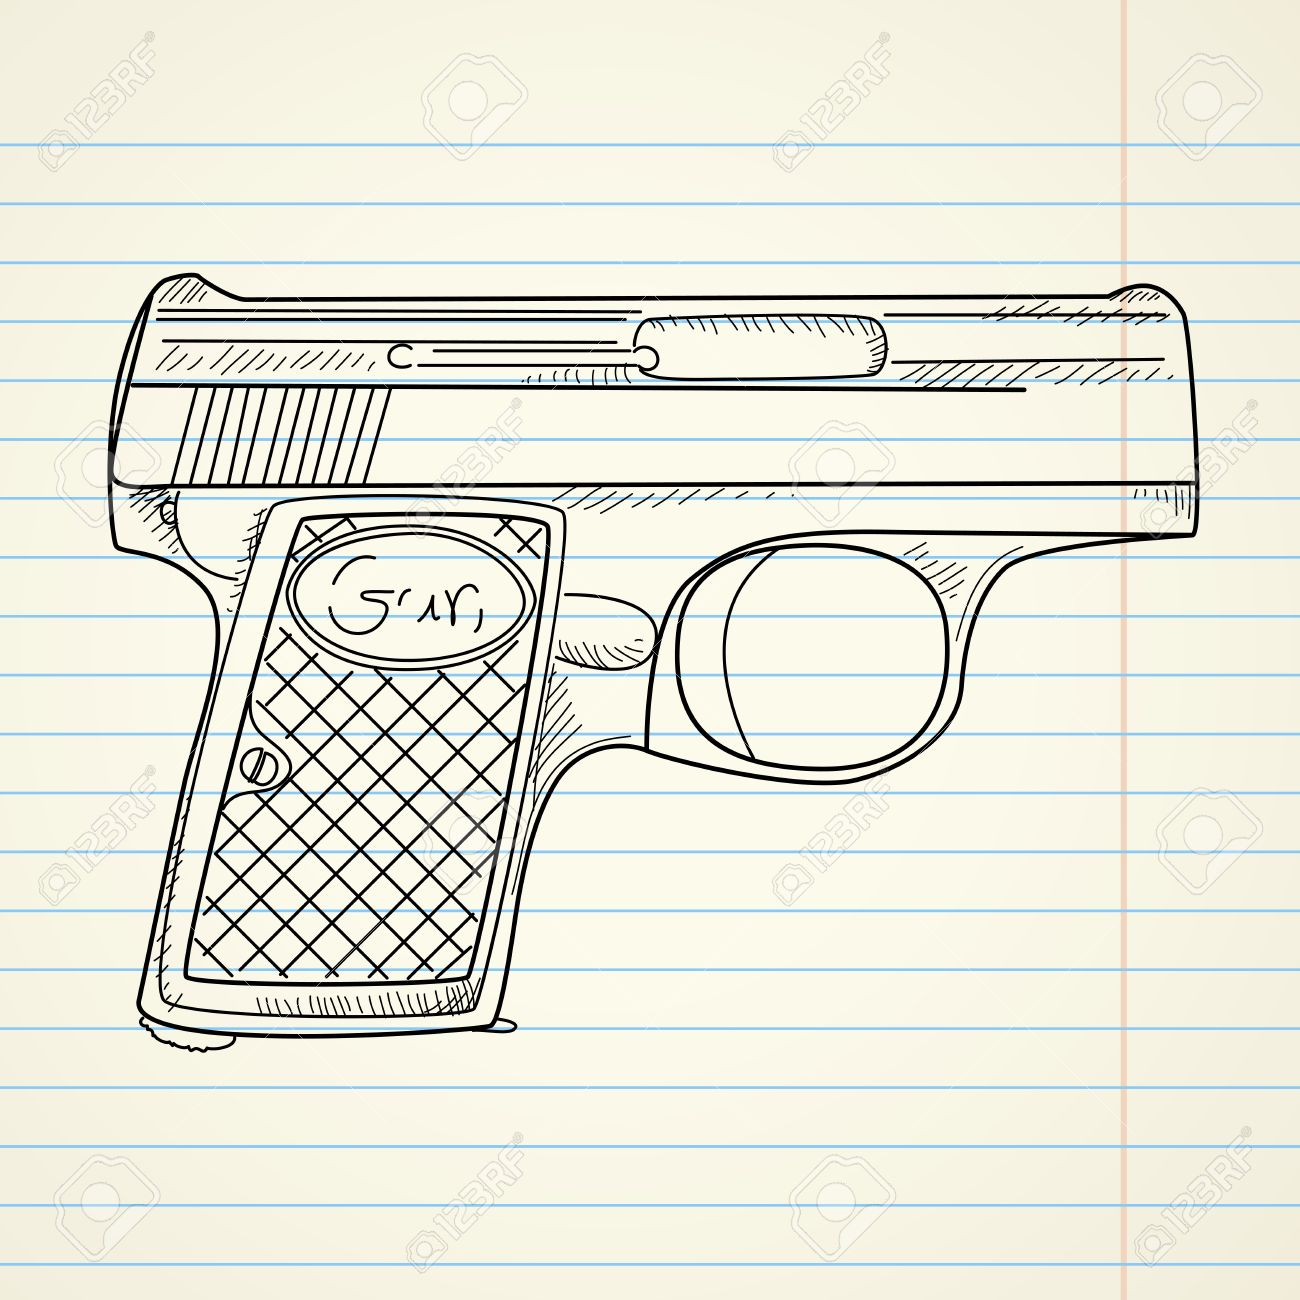 1300x1300 Vector Illustration Of A Gun On Paper Background Royalty Free